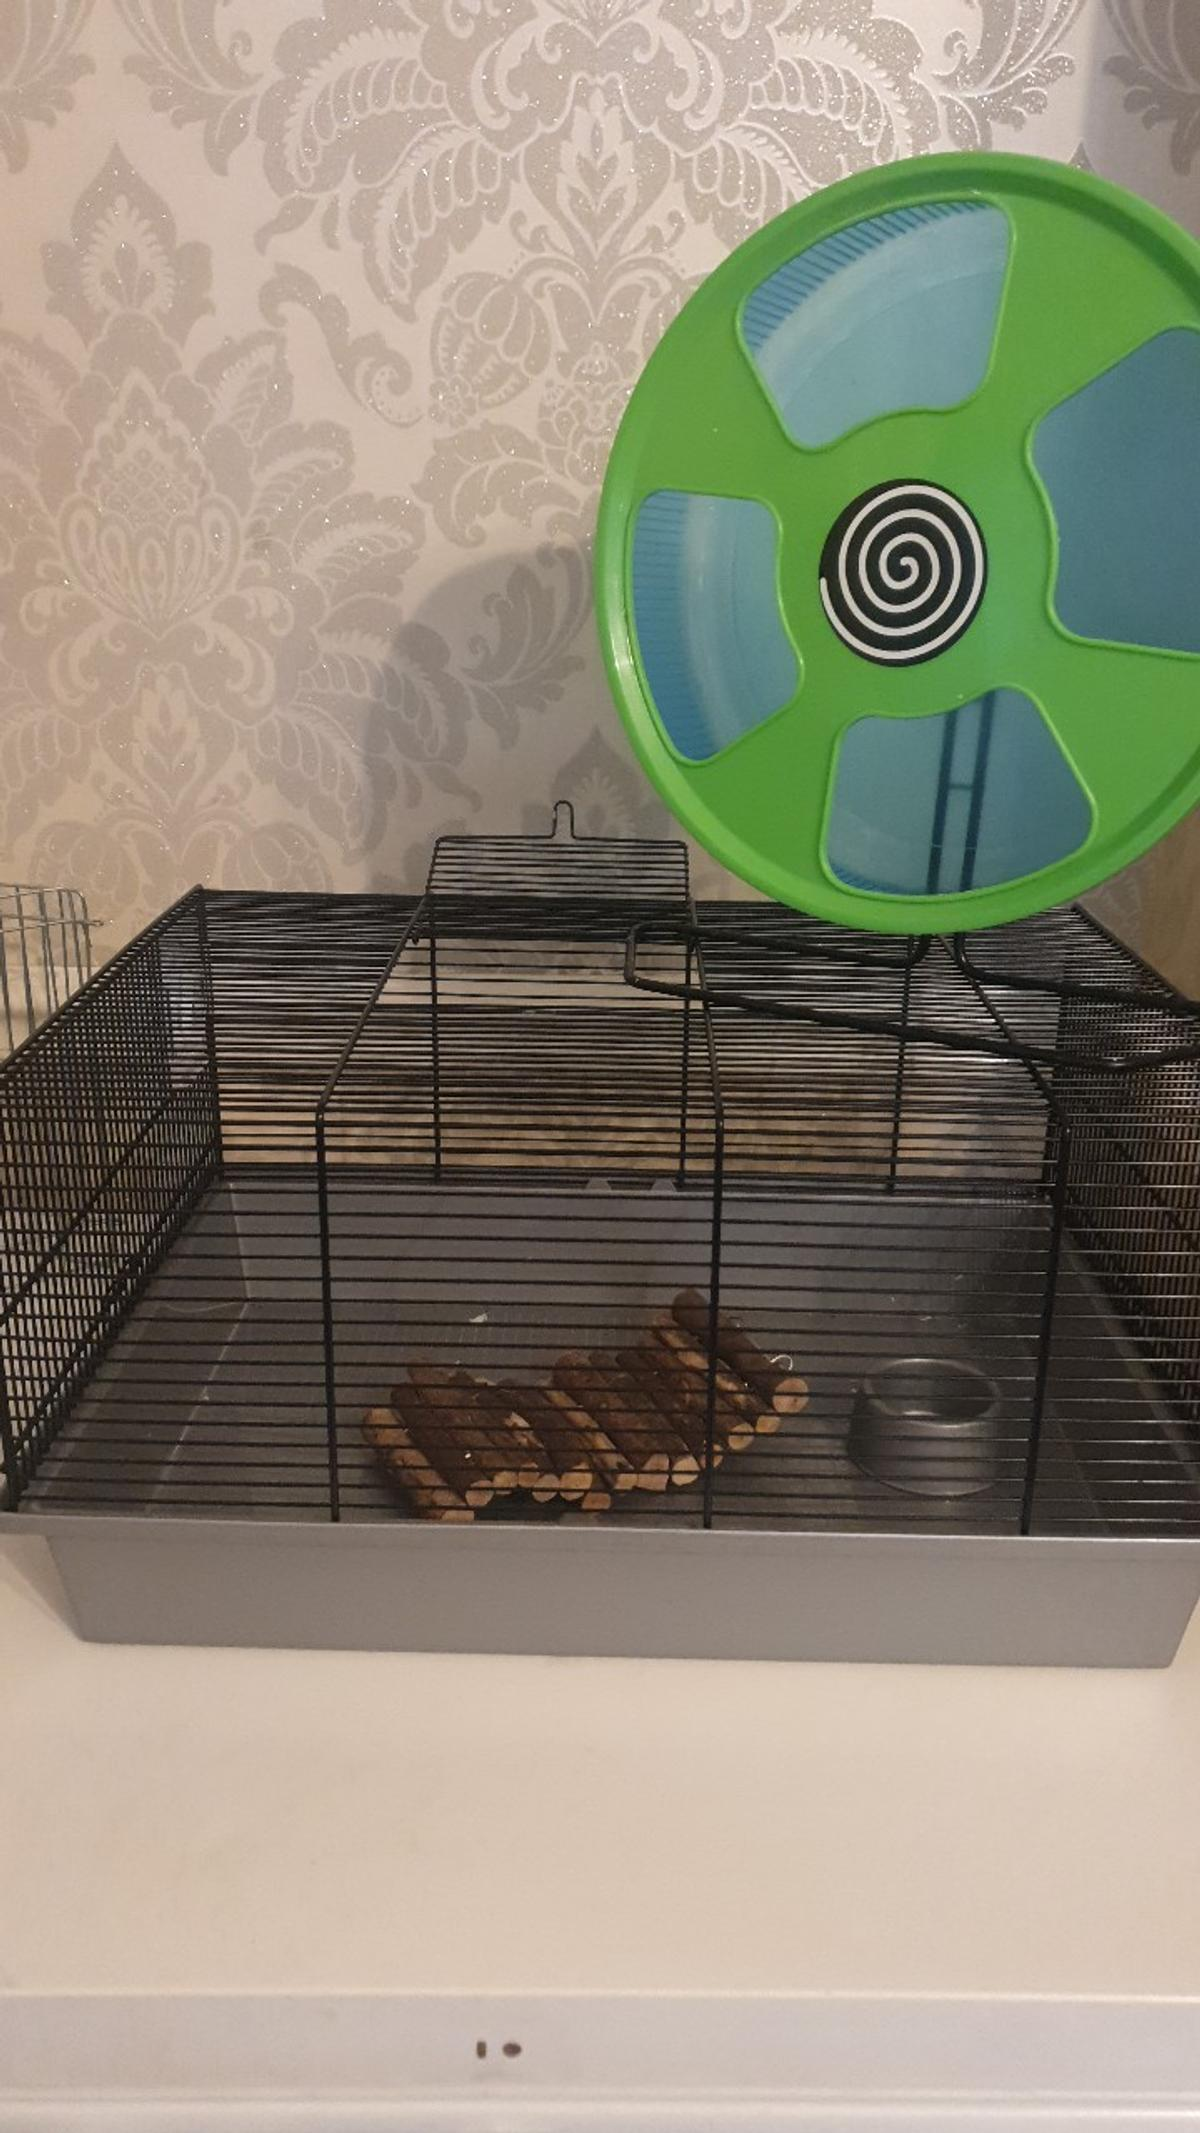 Medium Wire Hamster Home In London Borough Of Barking And Dagenham For 10 00 For Sale Shpock